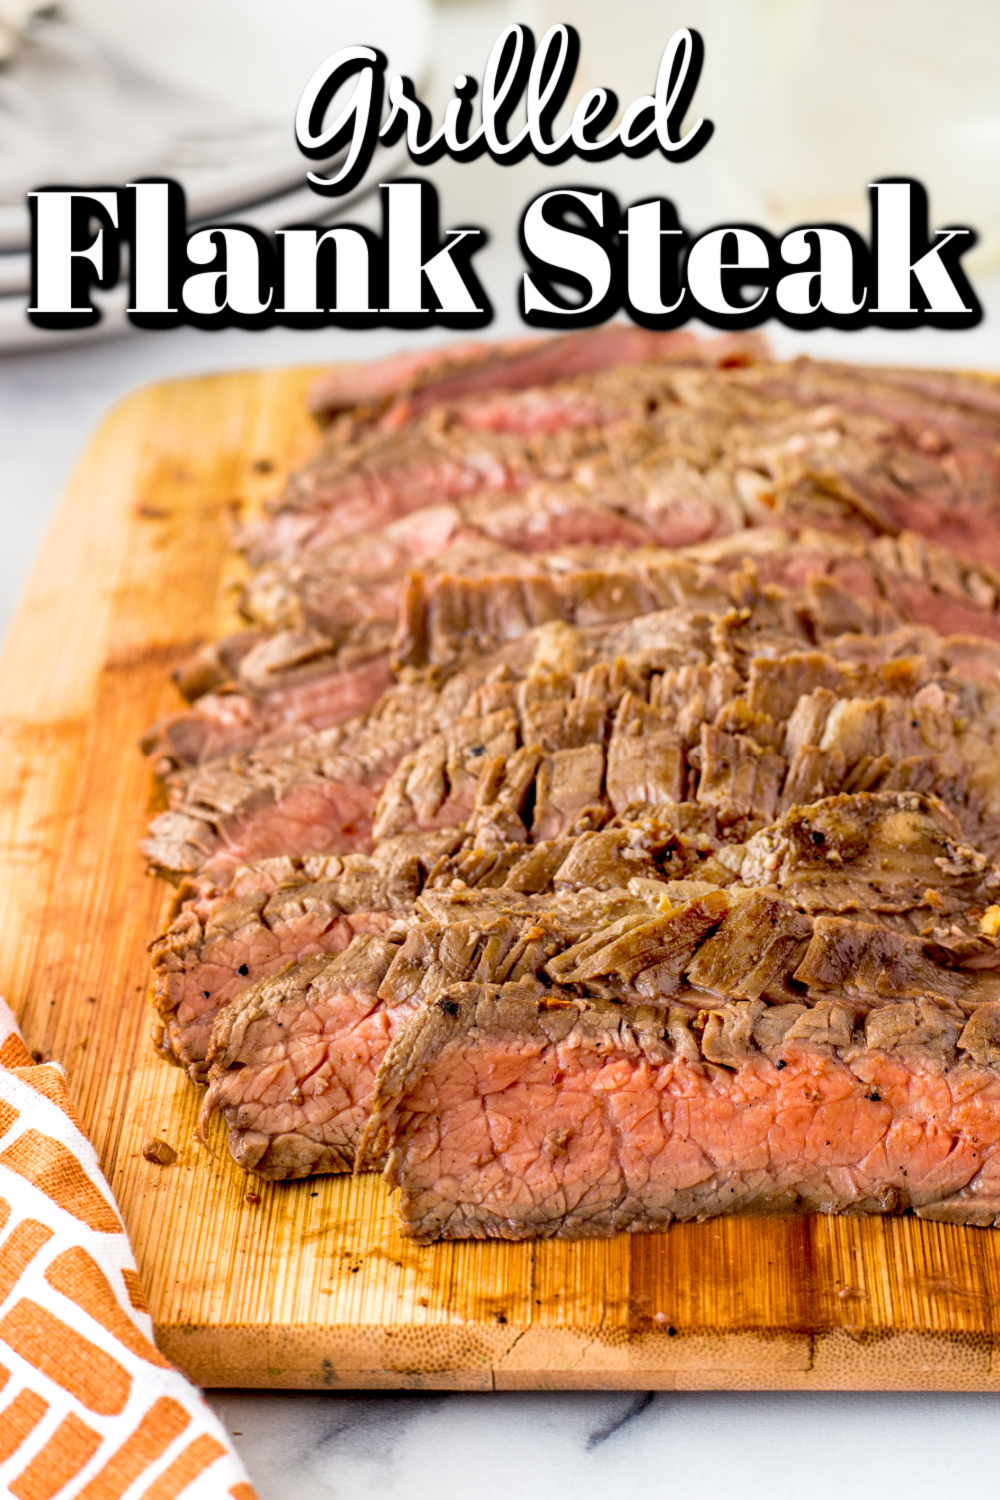 This Grilled Flank Steak done in a quick marinade and grilled over high heat simply melts in your month. It's perfect for a week night meal for the clan or a casual weekend dinner!